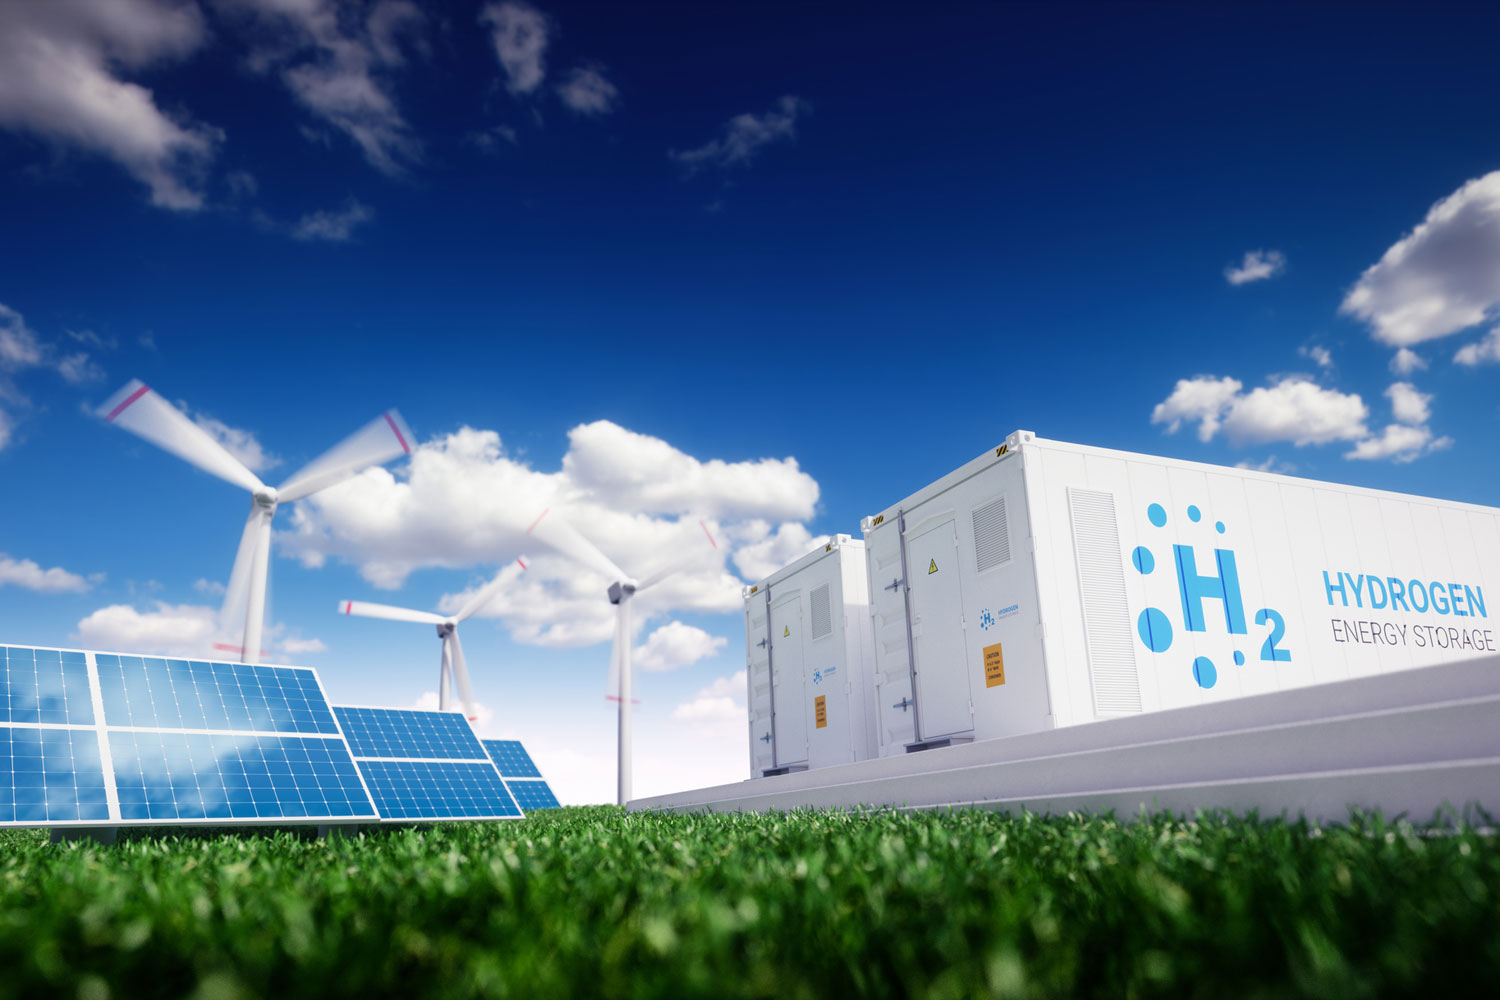 illustration of solar array, wind turbine and hydrogen storage units